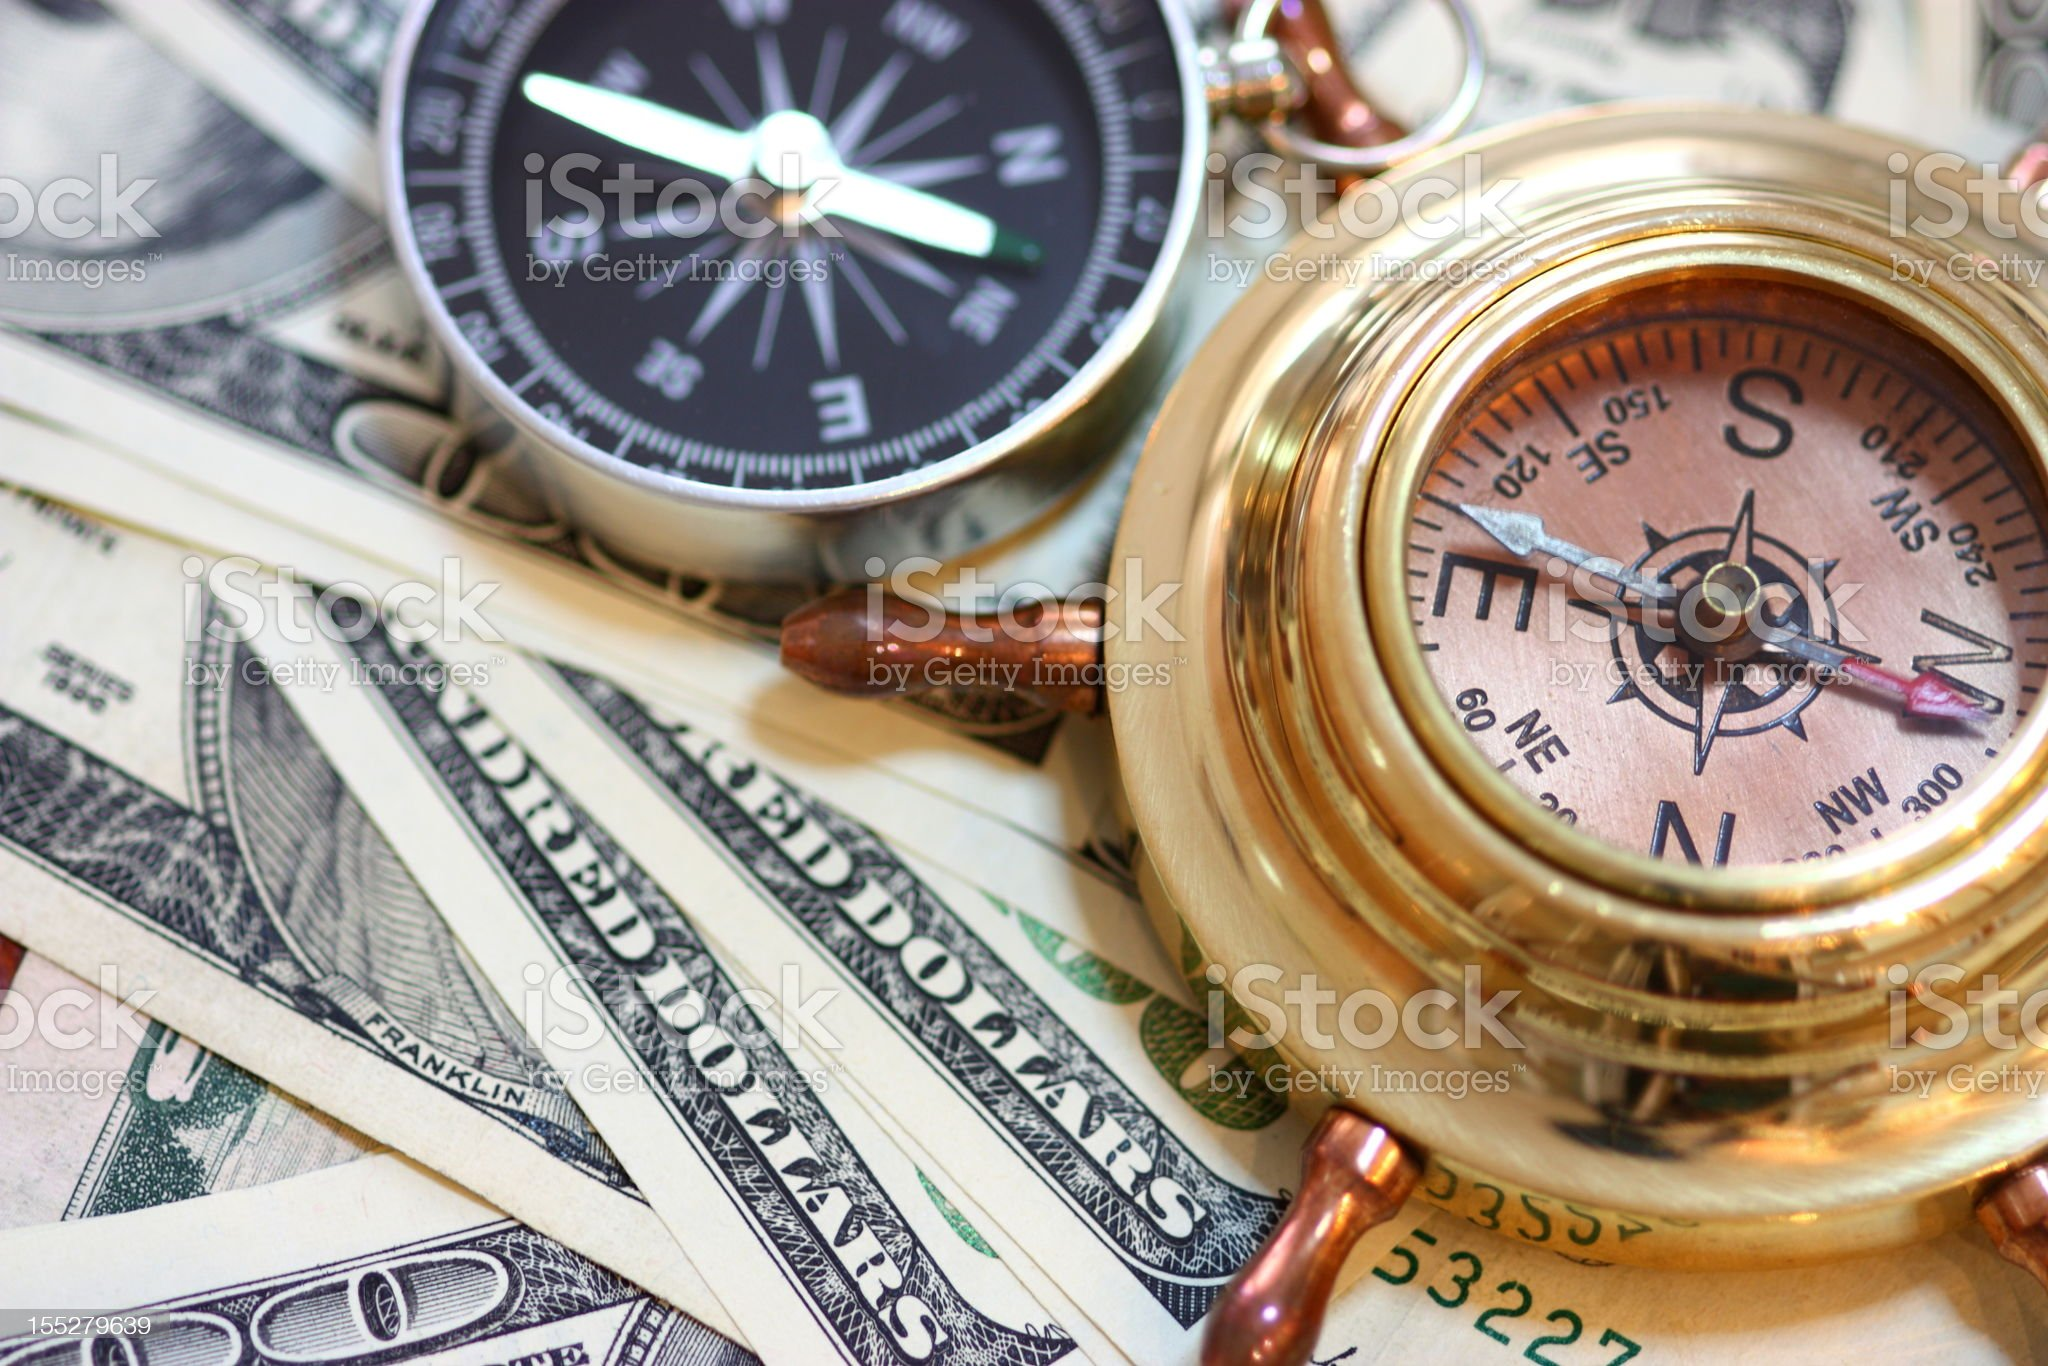 Nautical compasses on top of US paper currency royalty-free stock photo